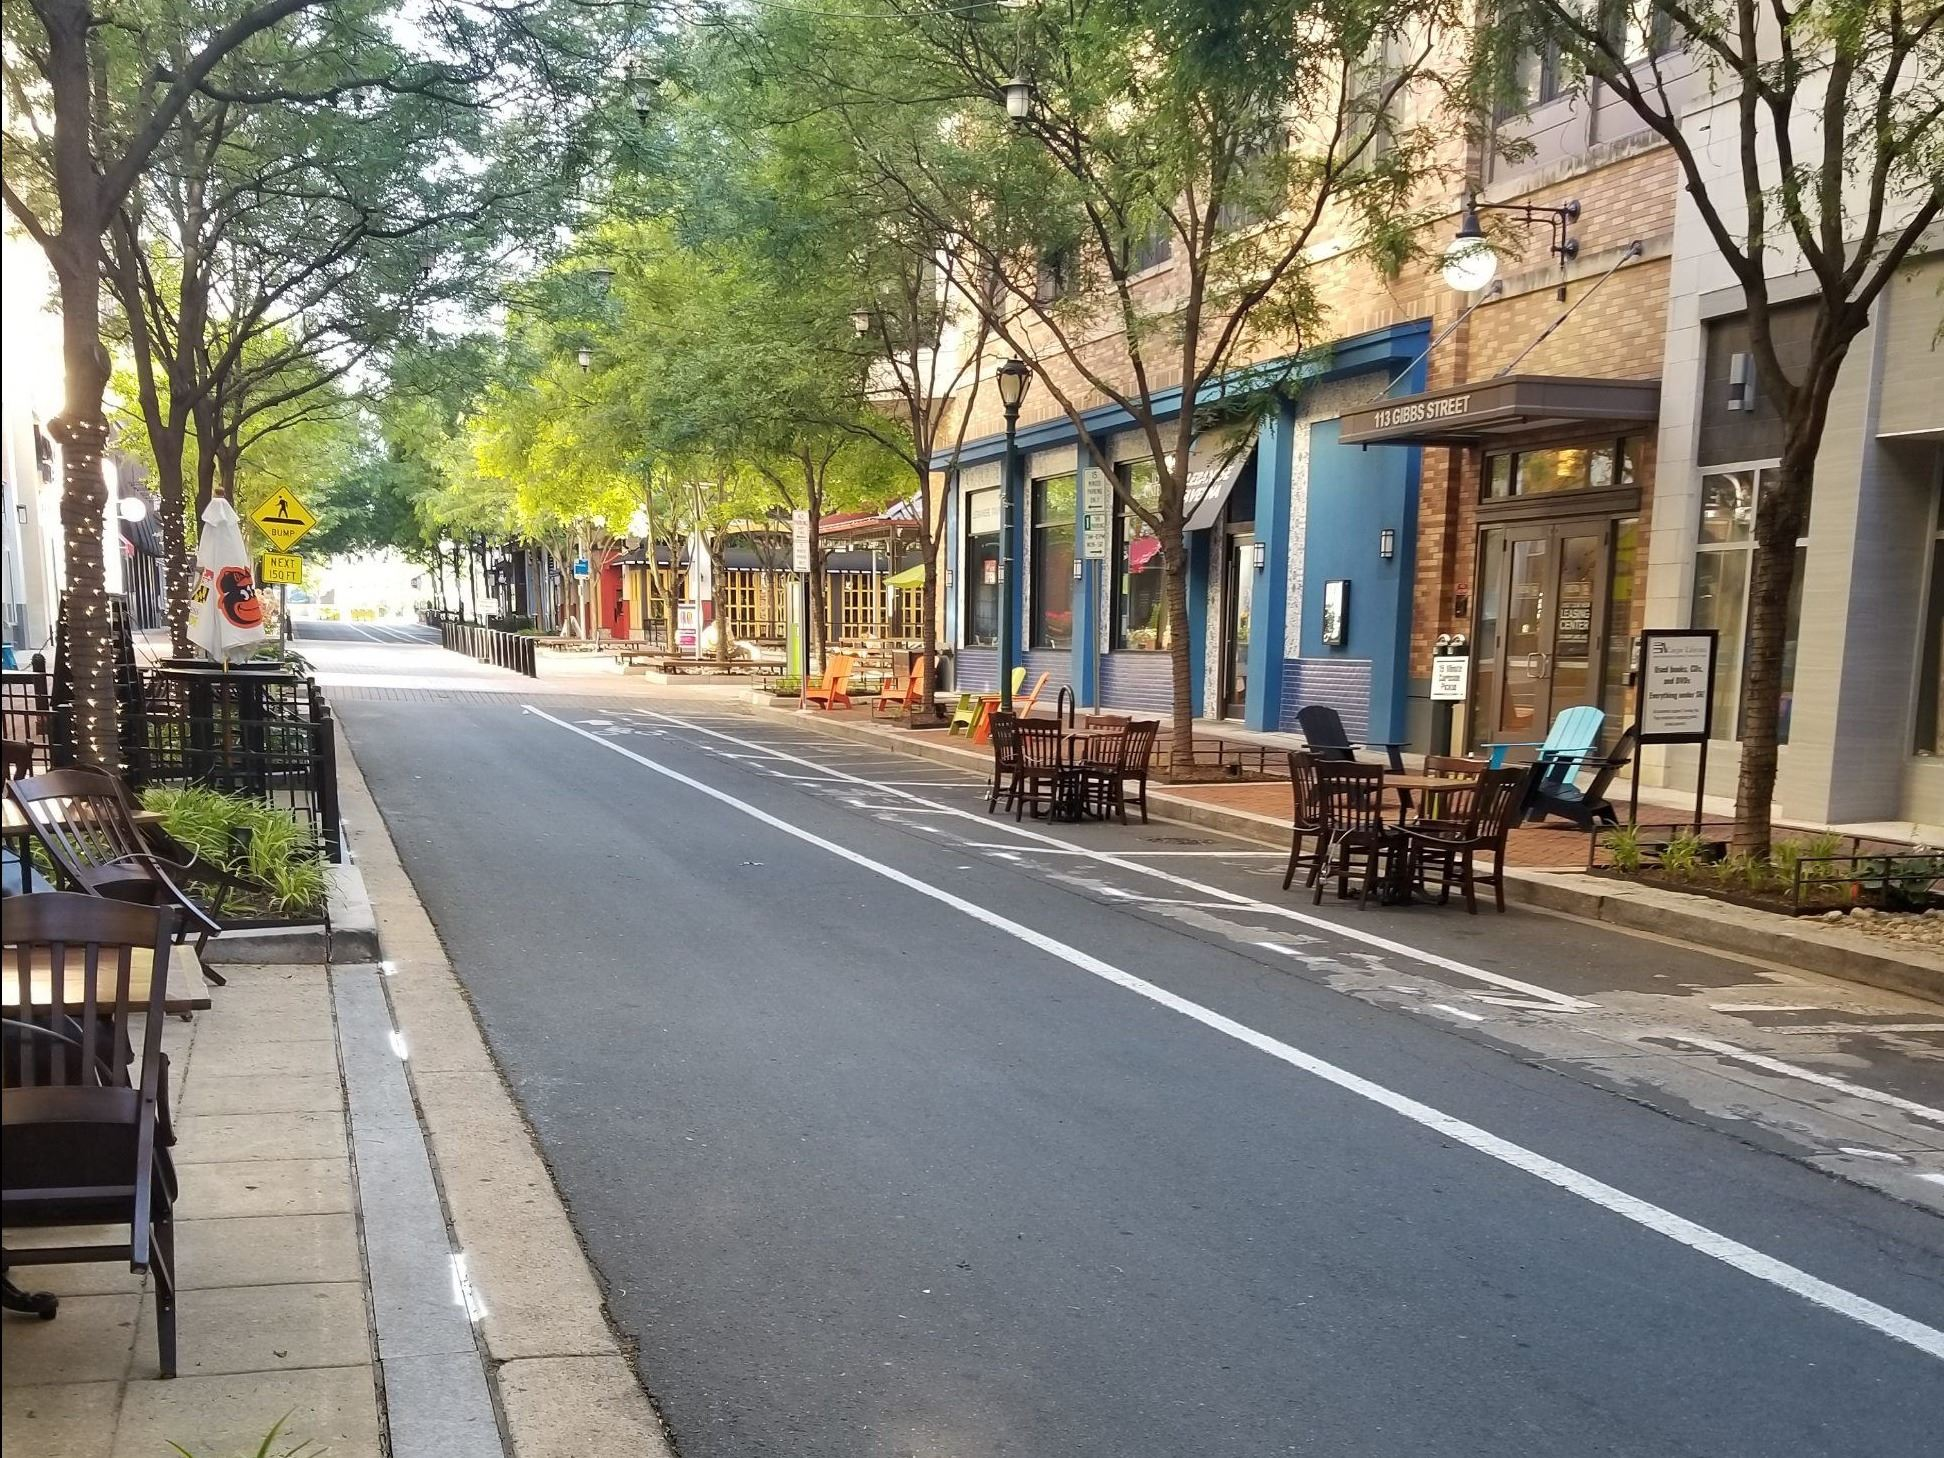 Gibbs Street with Outdoor Dining Tables